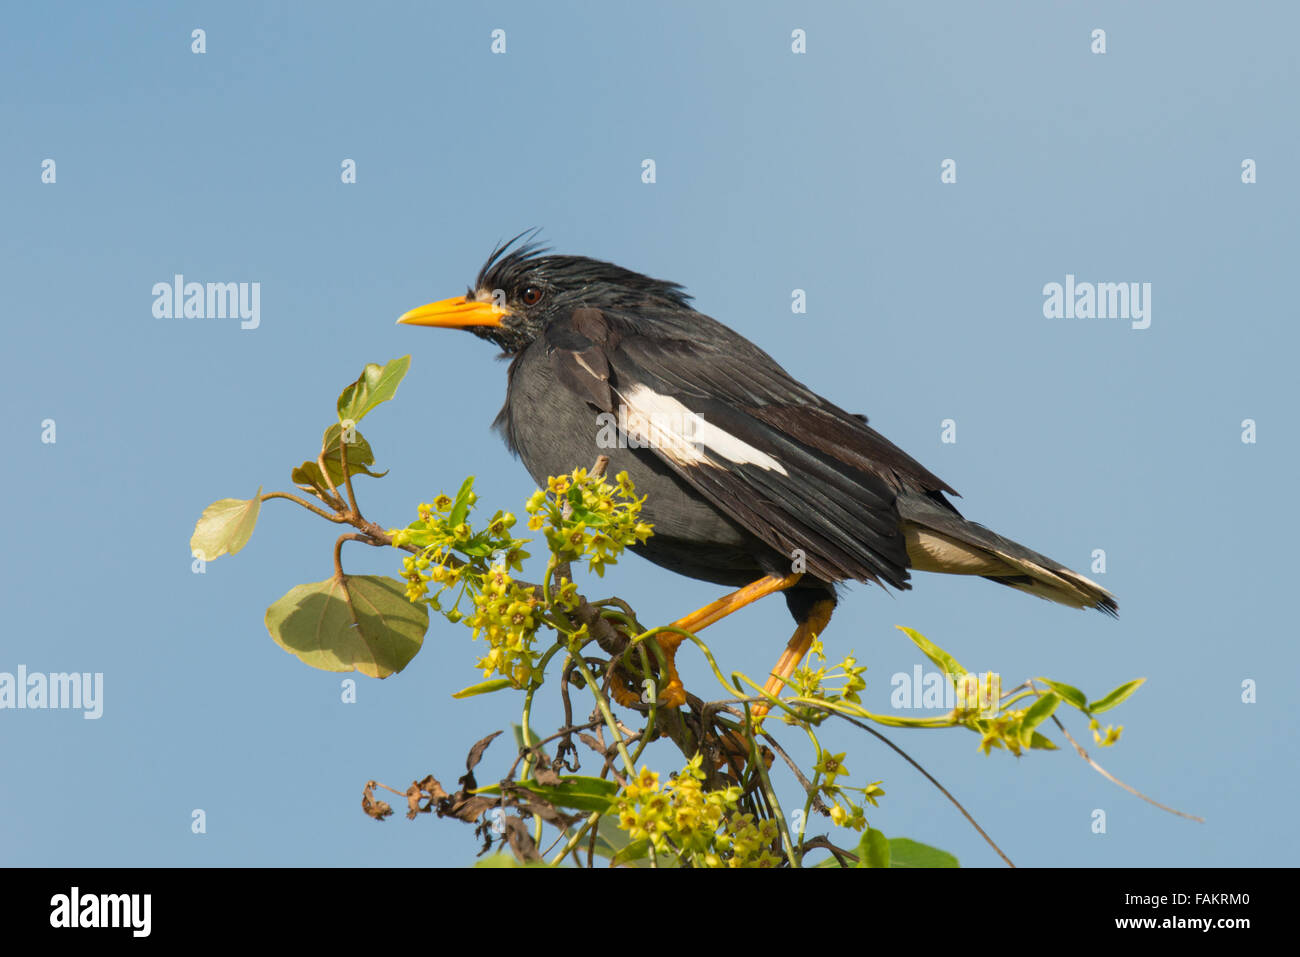 The great myna (Acridotheres grandis) is a species of starling in the Sturnidae family. - Stock Image